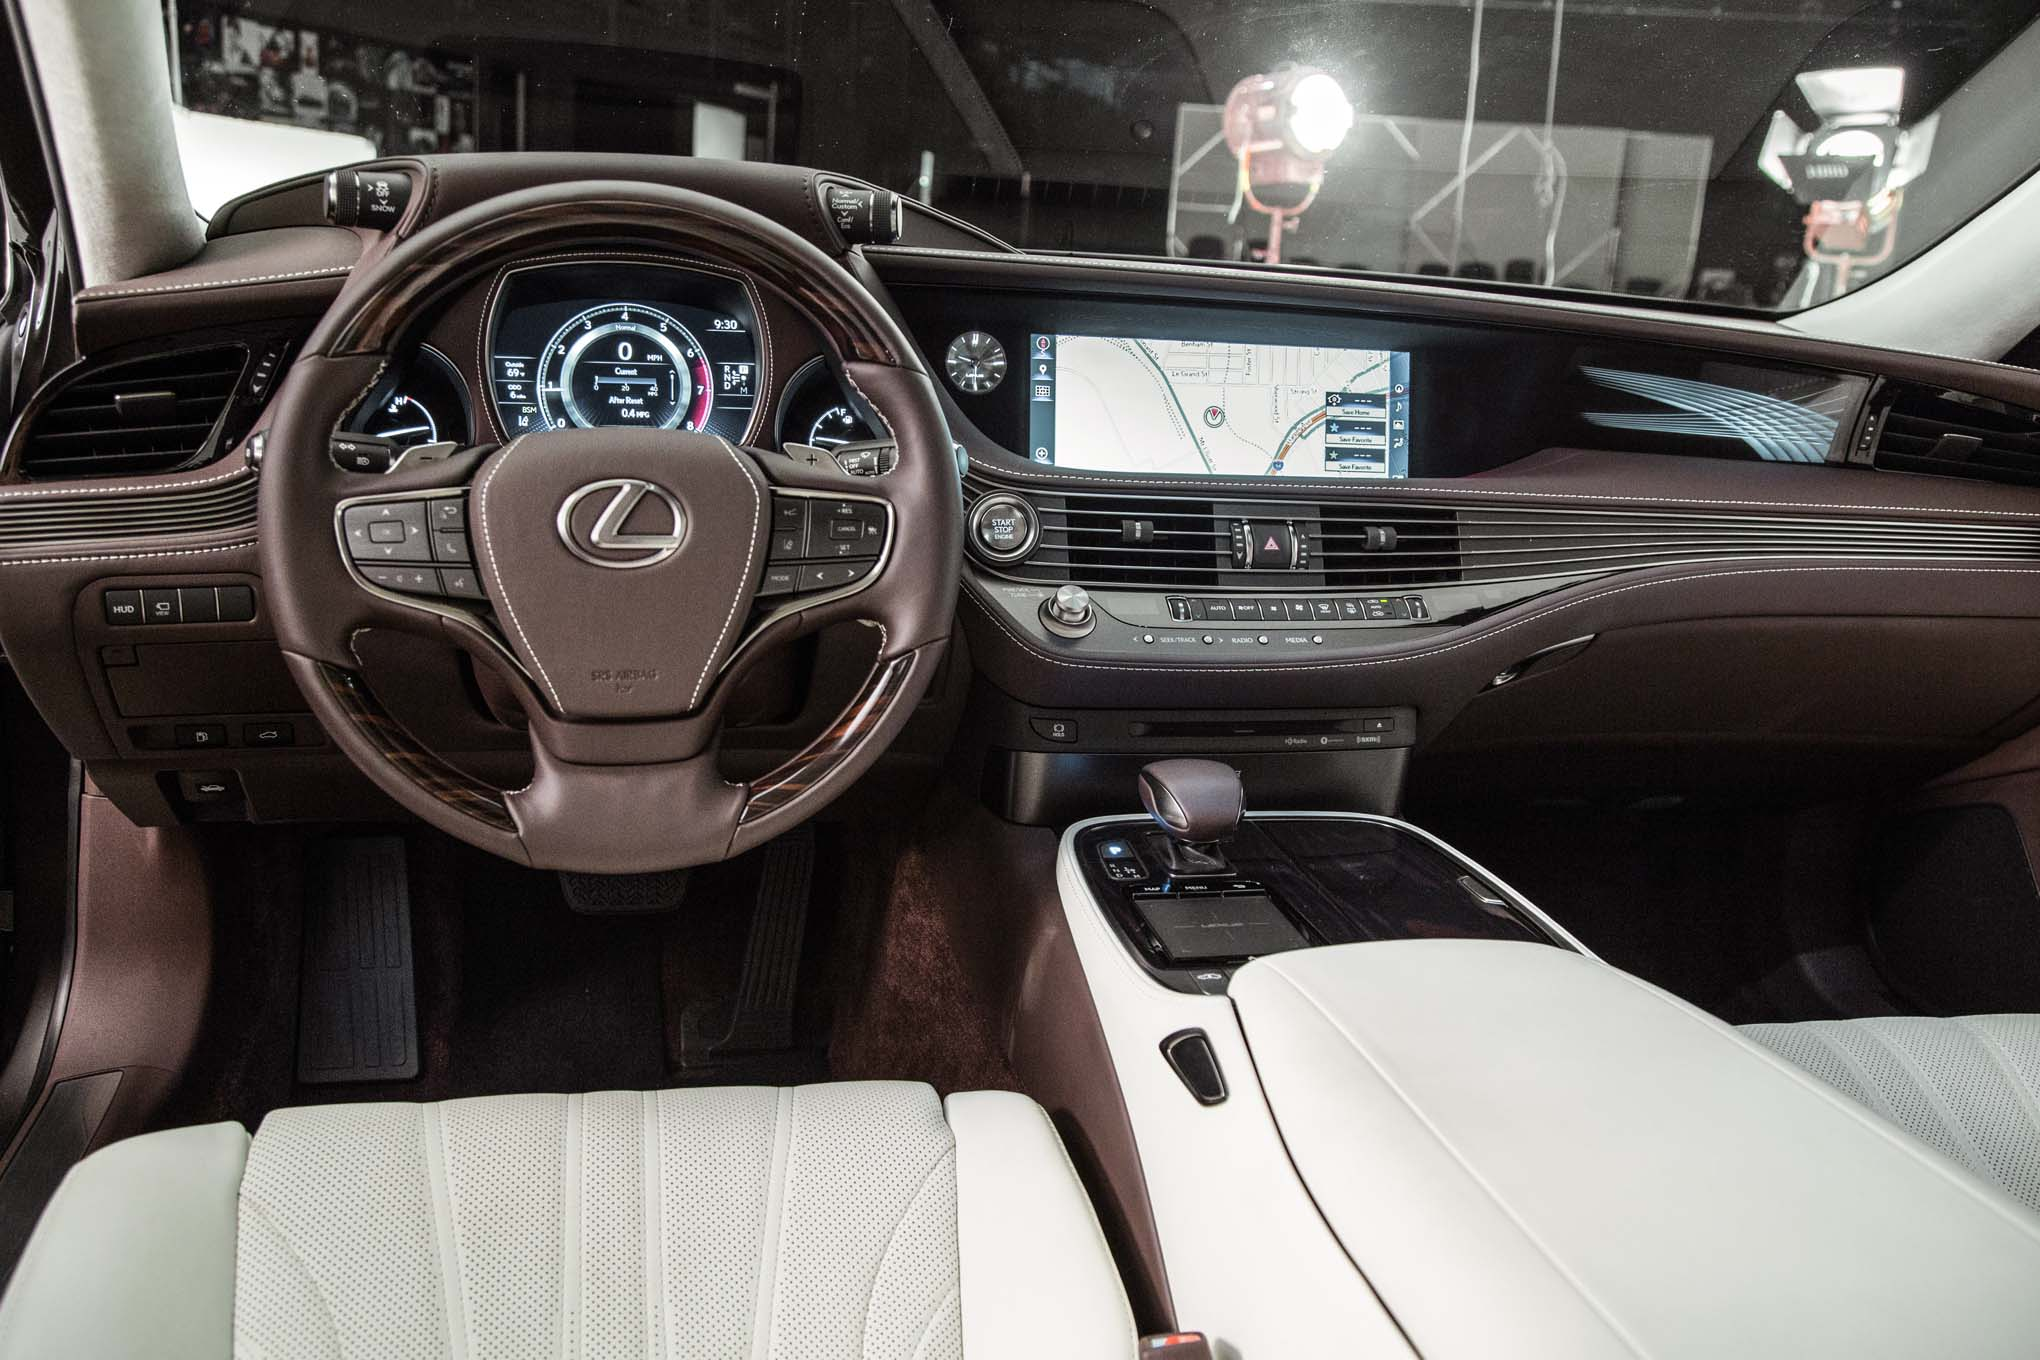 2018 lexus ls interior.  2018 show more for 2018 lexus ls interior